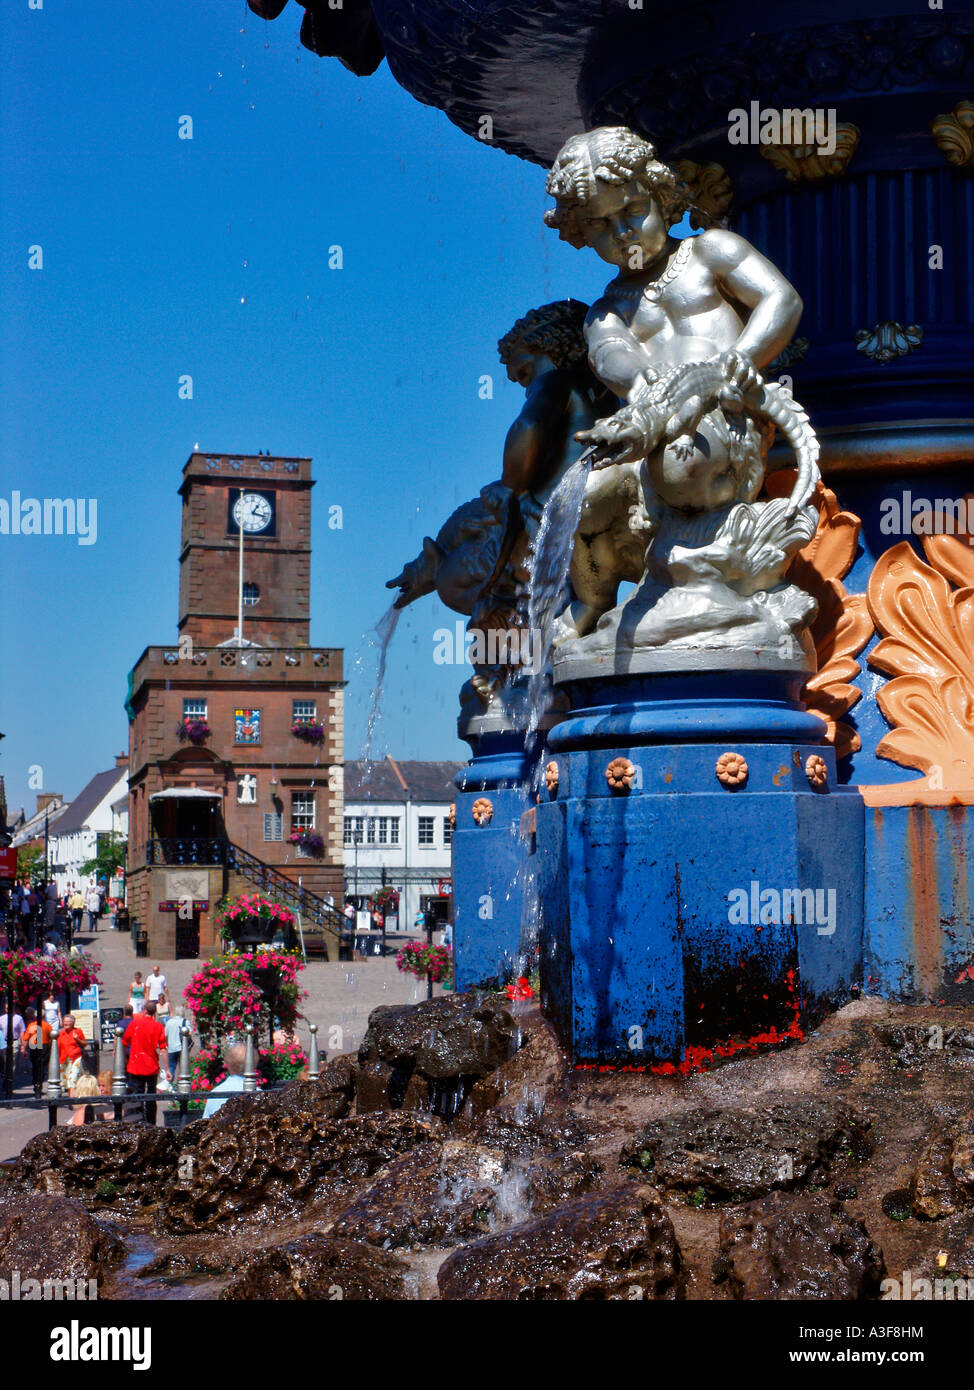 Water fountain with Midsteeple in background High Street Dumfries Galloway Scotland - Stock Image